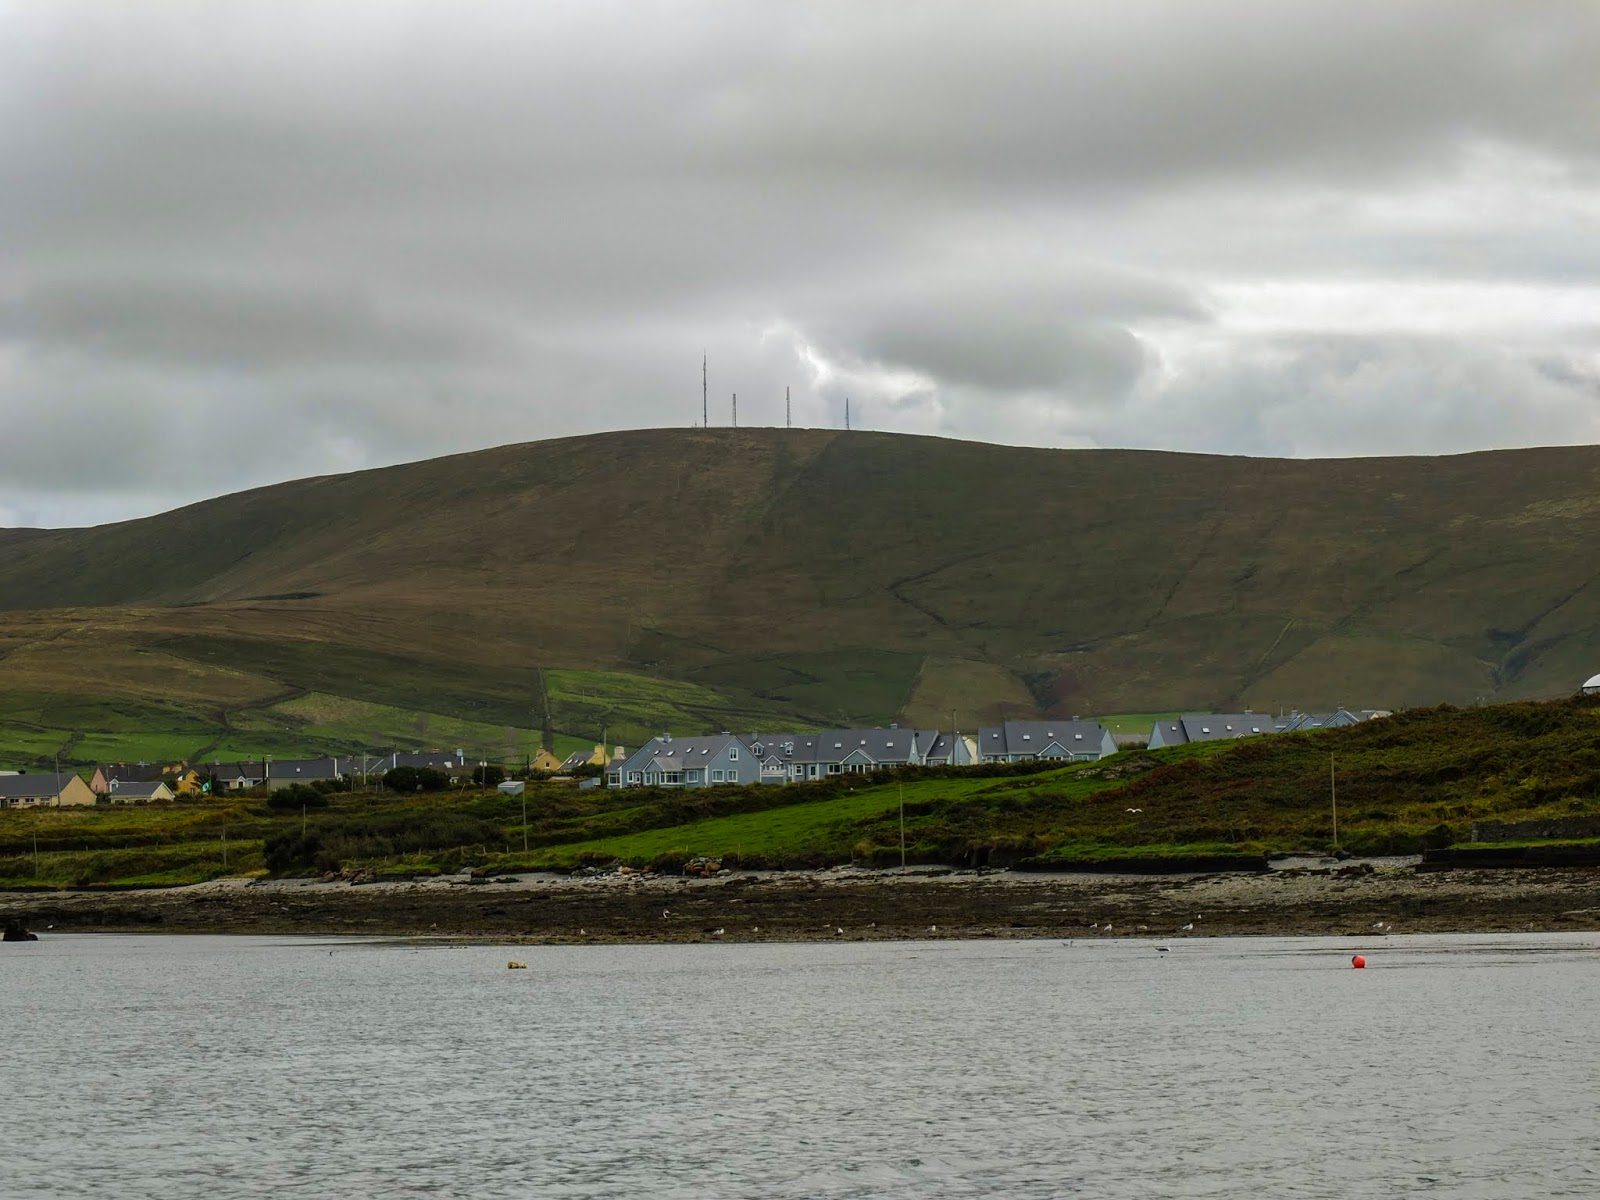 A mountain side on the Iveragh Peninsula captured from the water.